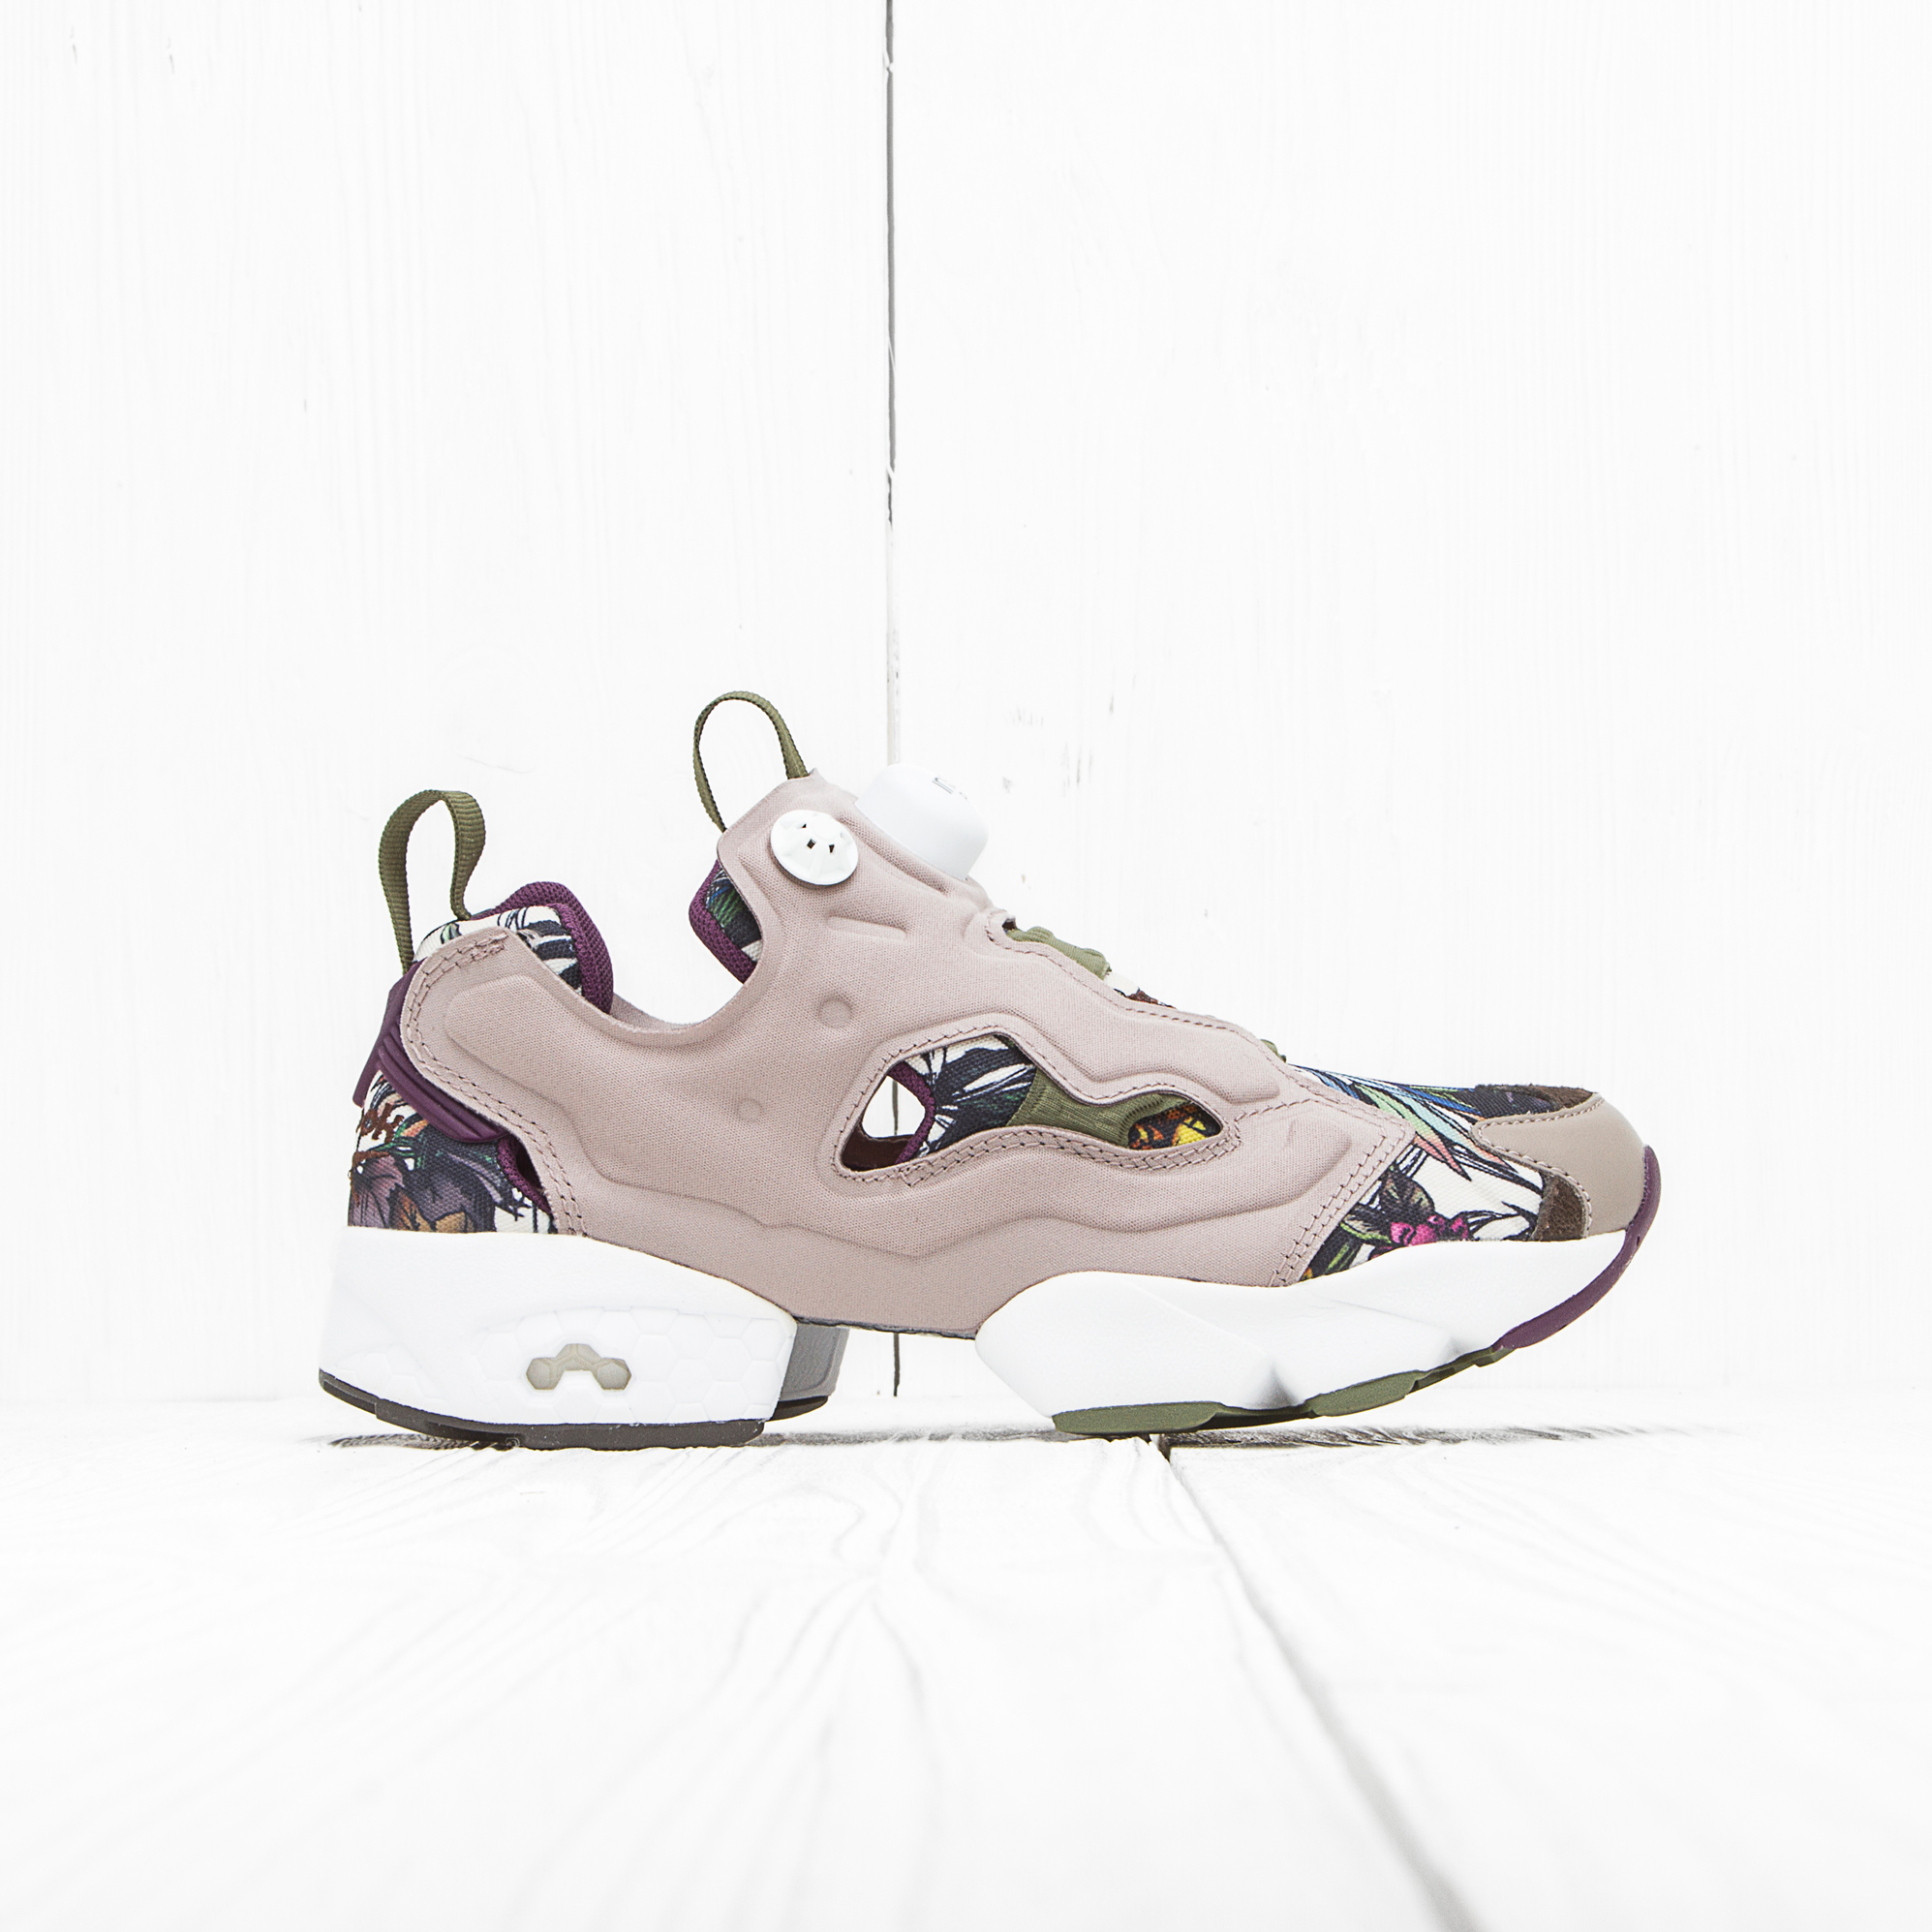 Кроссовки Reebok INSTA PUMP FURY SEASONAL GRAPHIC Beach Stone/Paper White/Green/Orchid/Stone